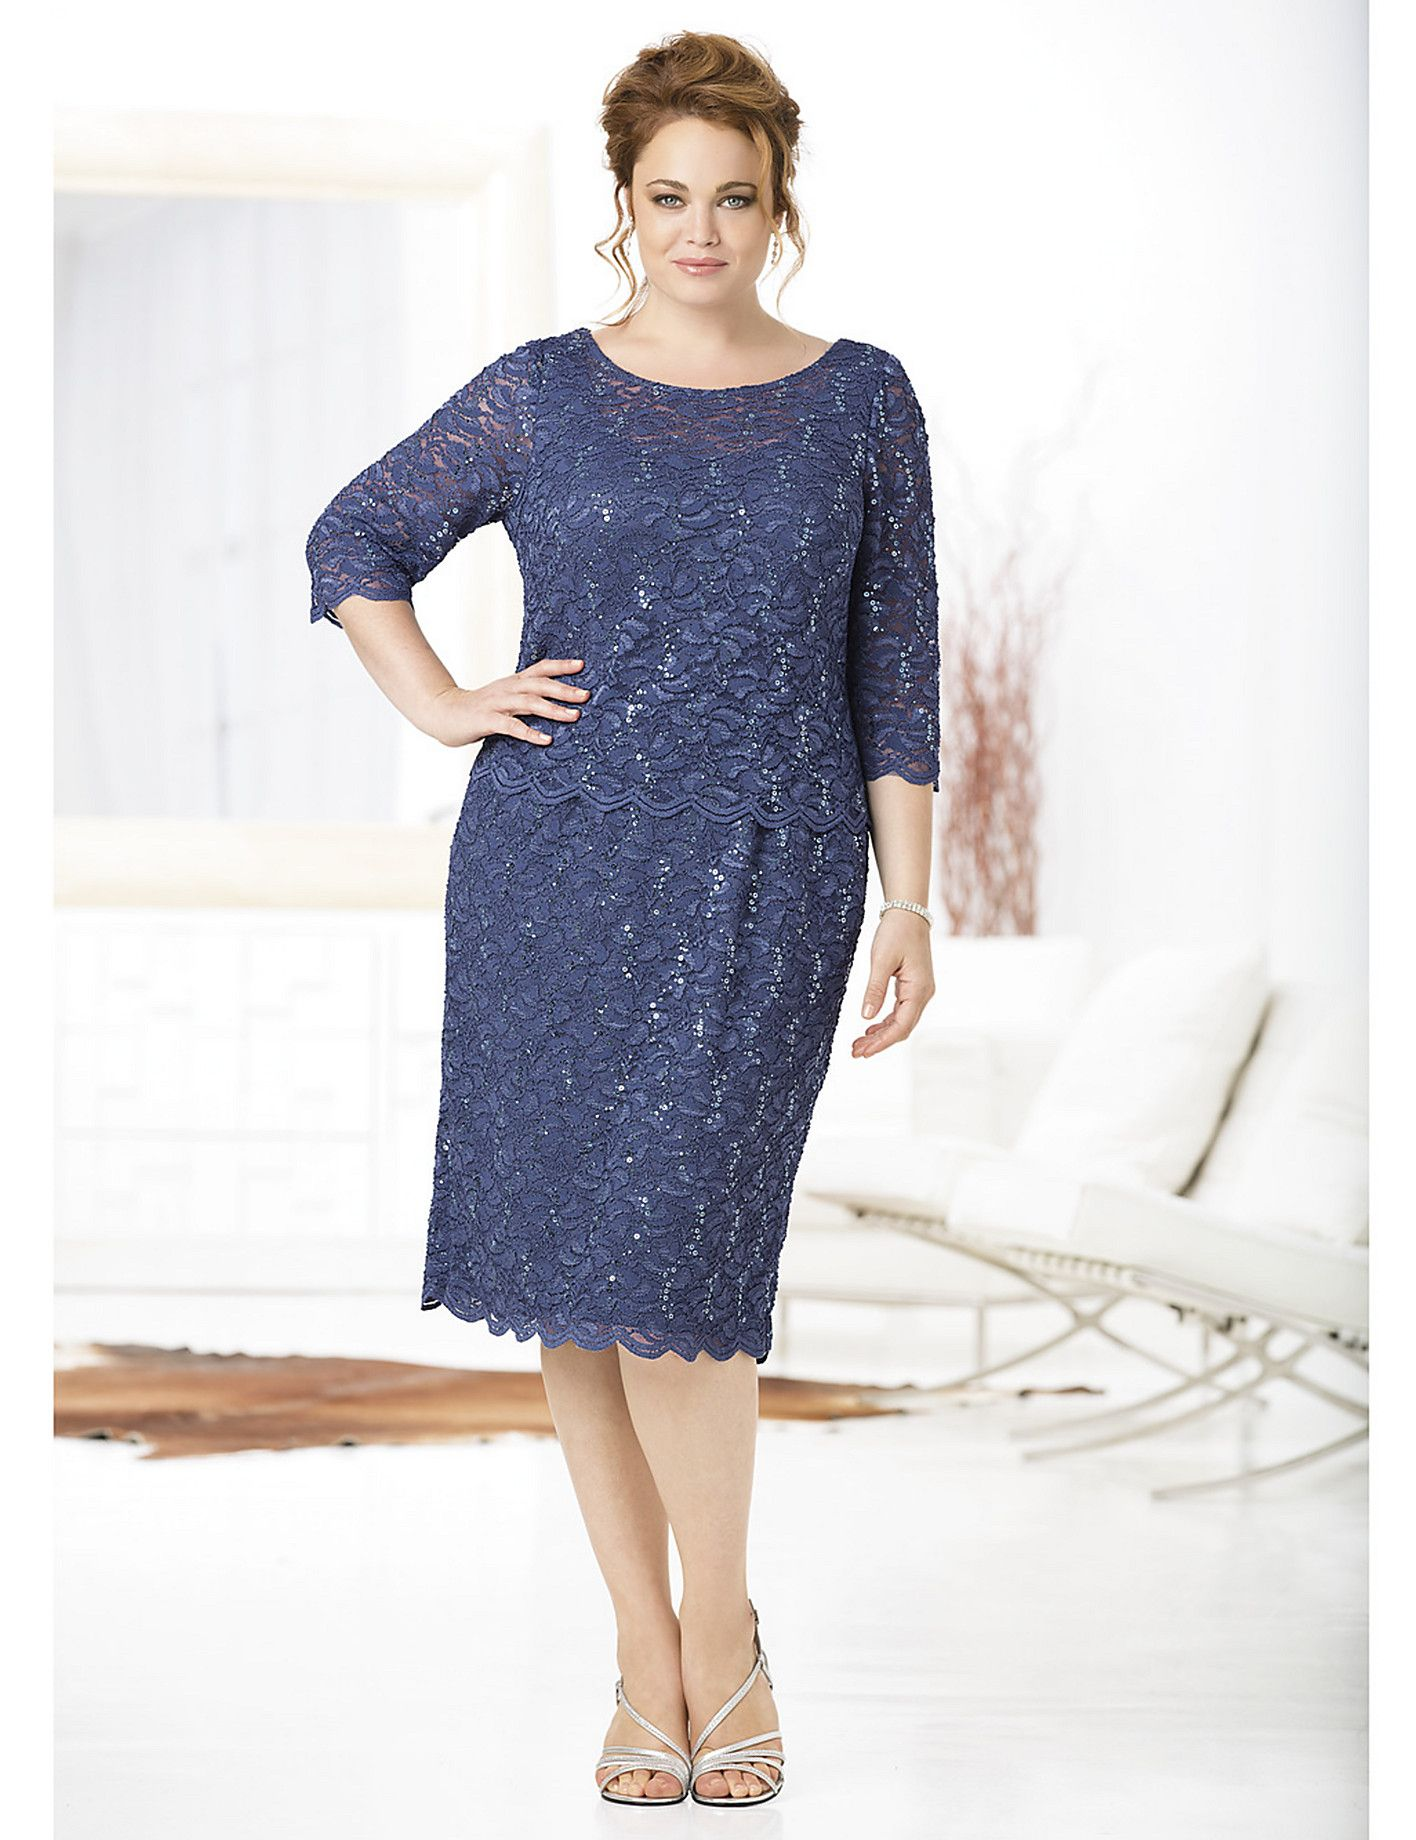 This beautiful lace allure layered dress by ulla popken is for Beautiful wedding guest dresses